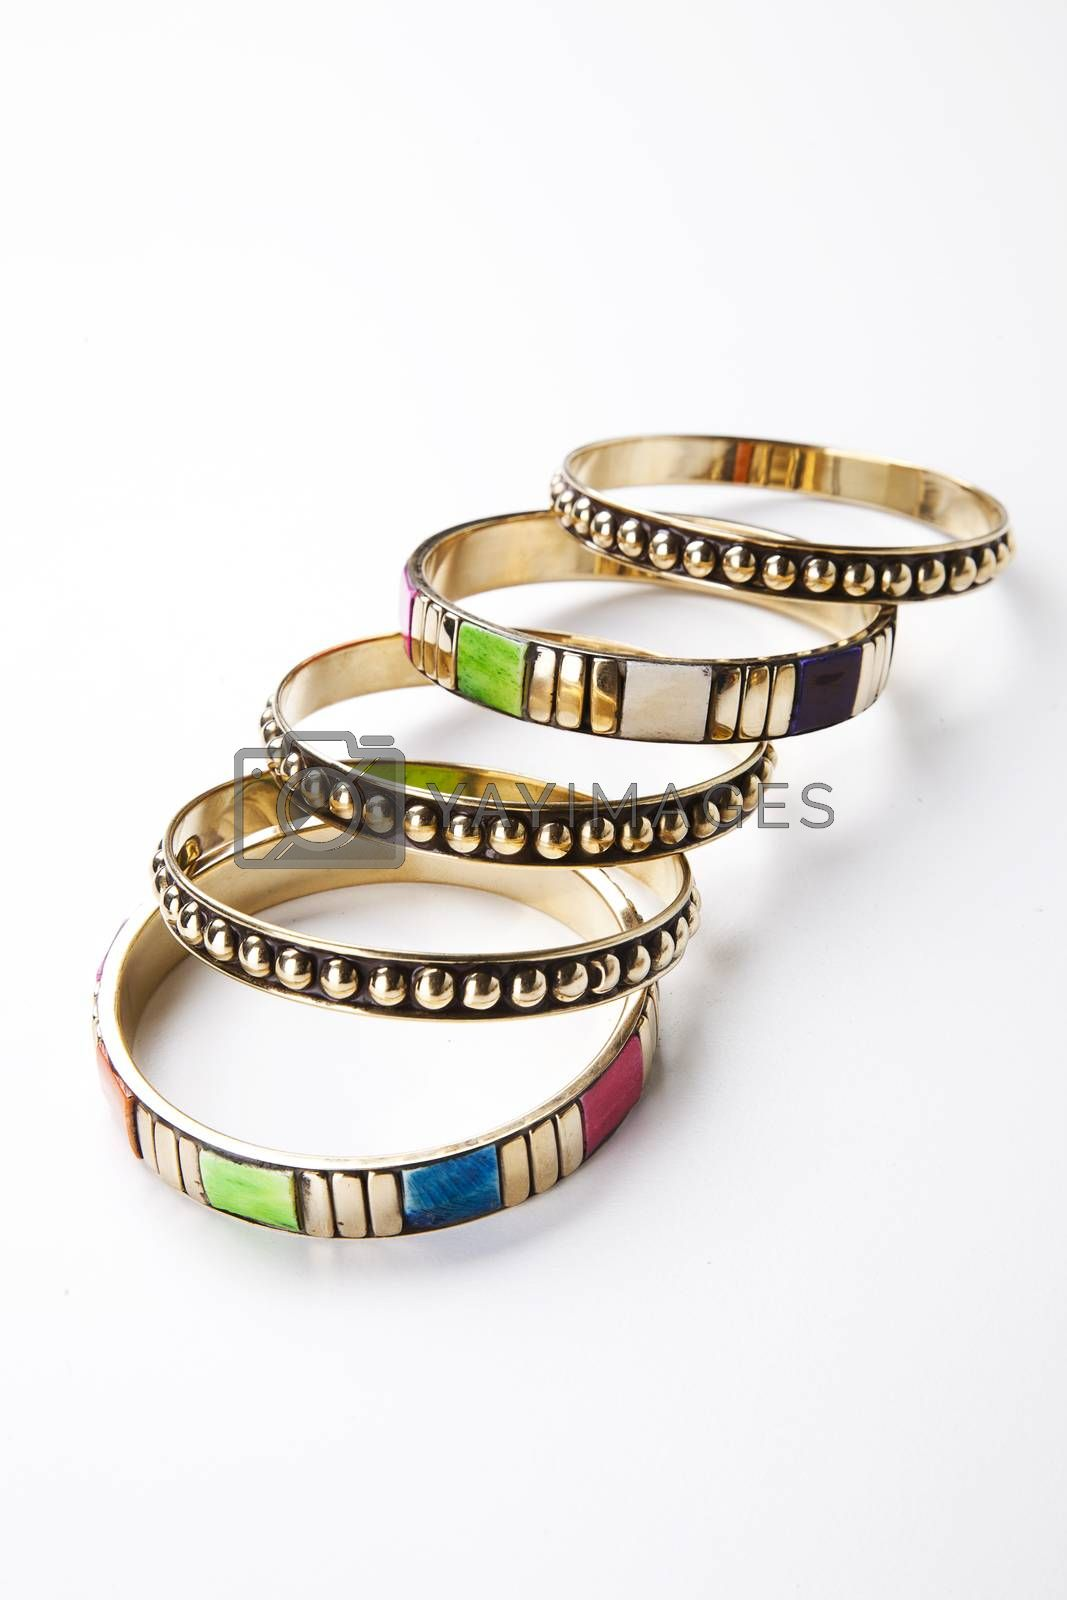 Traditional bangles over white background